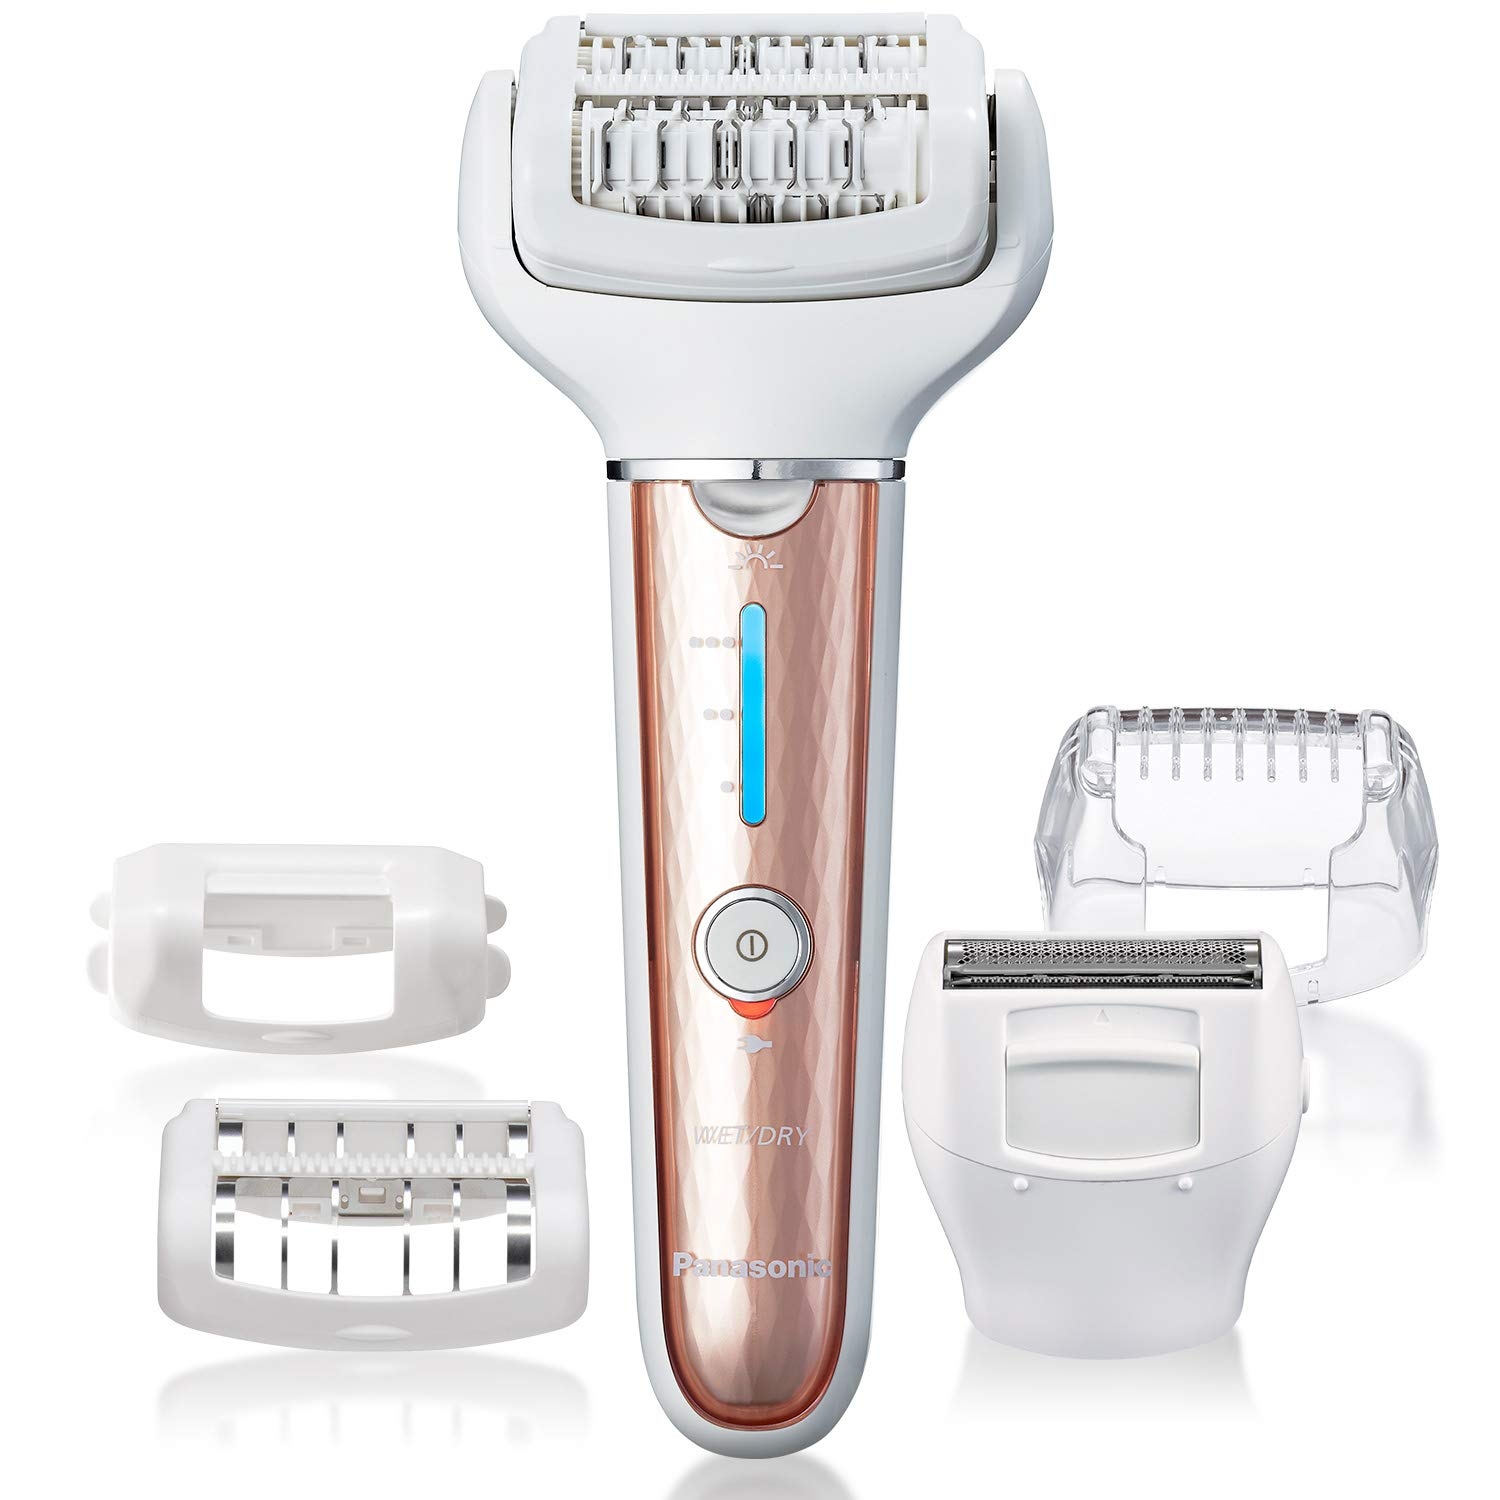 Panasonic Cordless Shaver Epilator For Women With 5 Attachments, Gentle Wet Dry Hair Removal for Legs, Underarms, Bikini, Face – ES-EL7A-P